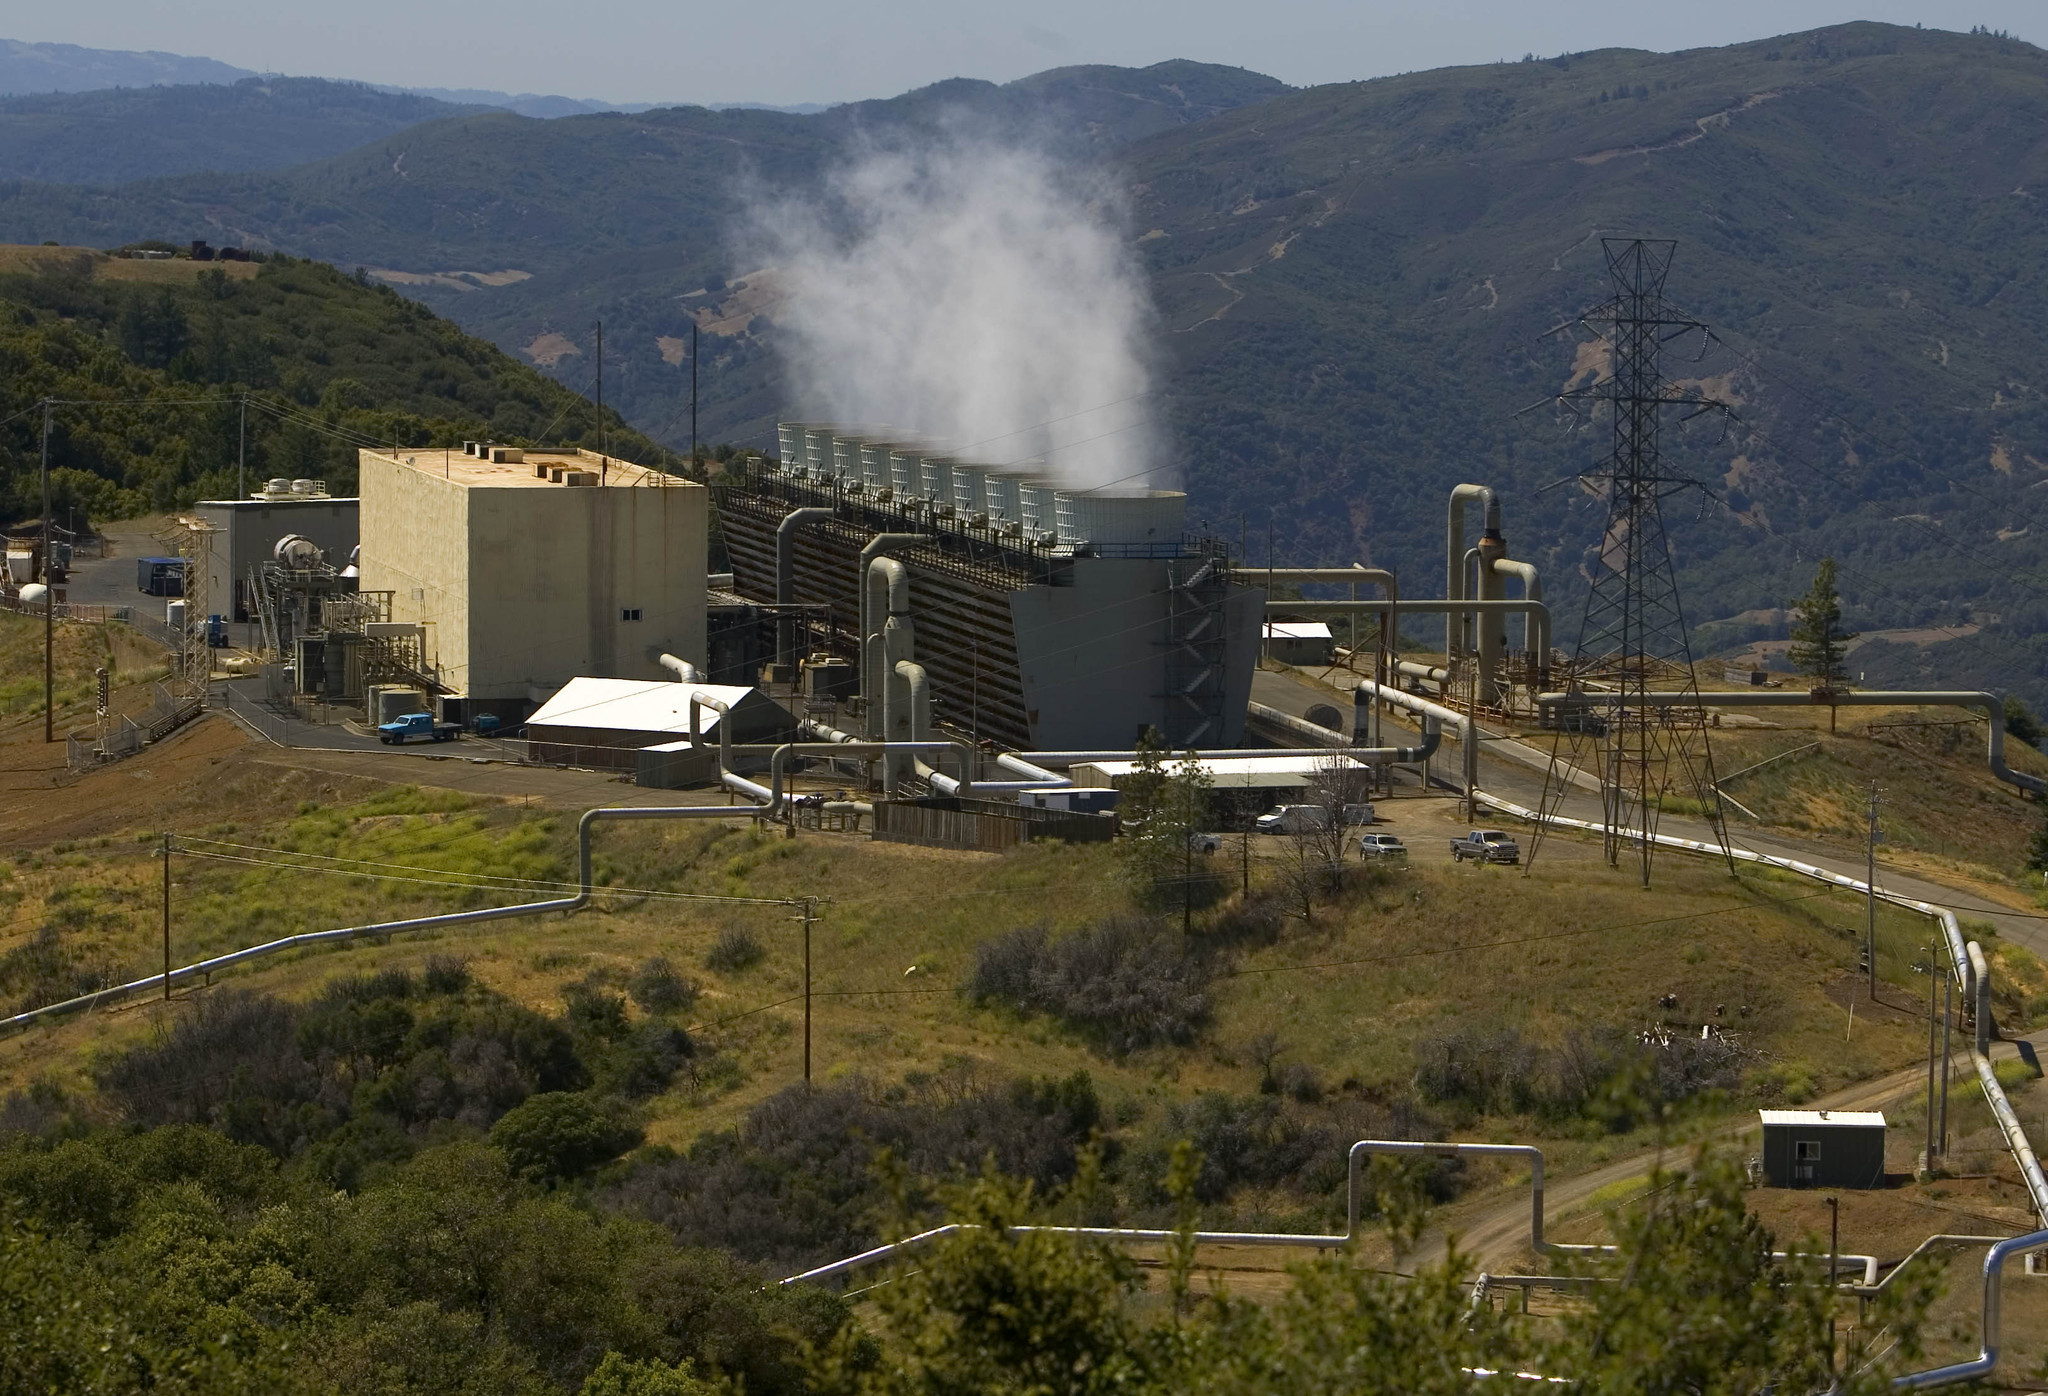 northern california valley fire damages part of huge geothermal,Wiring diagram,Electrical Plant Near Me